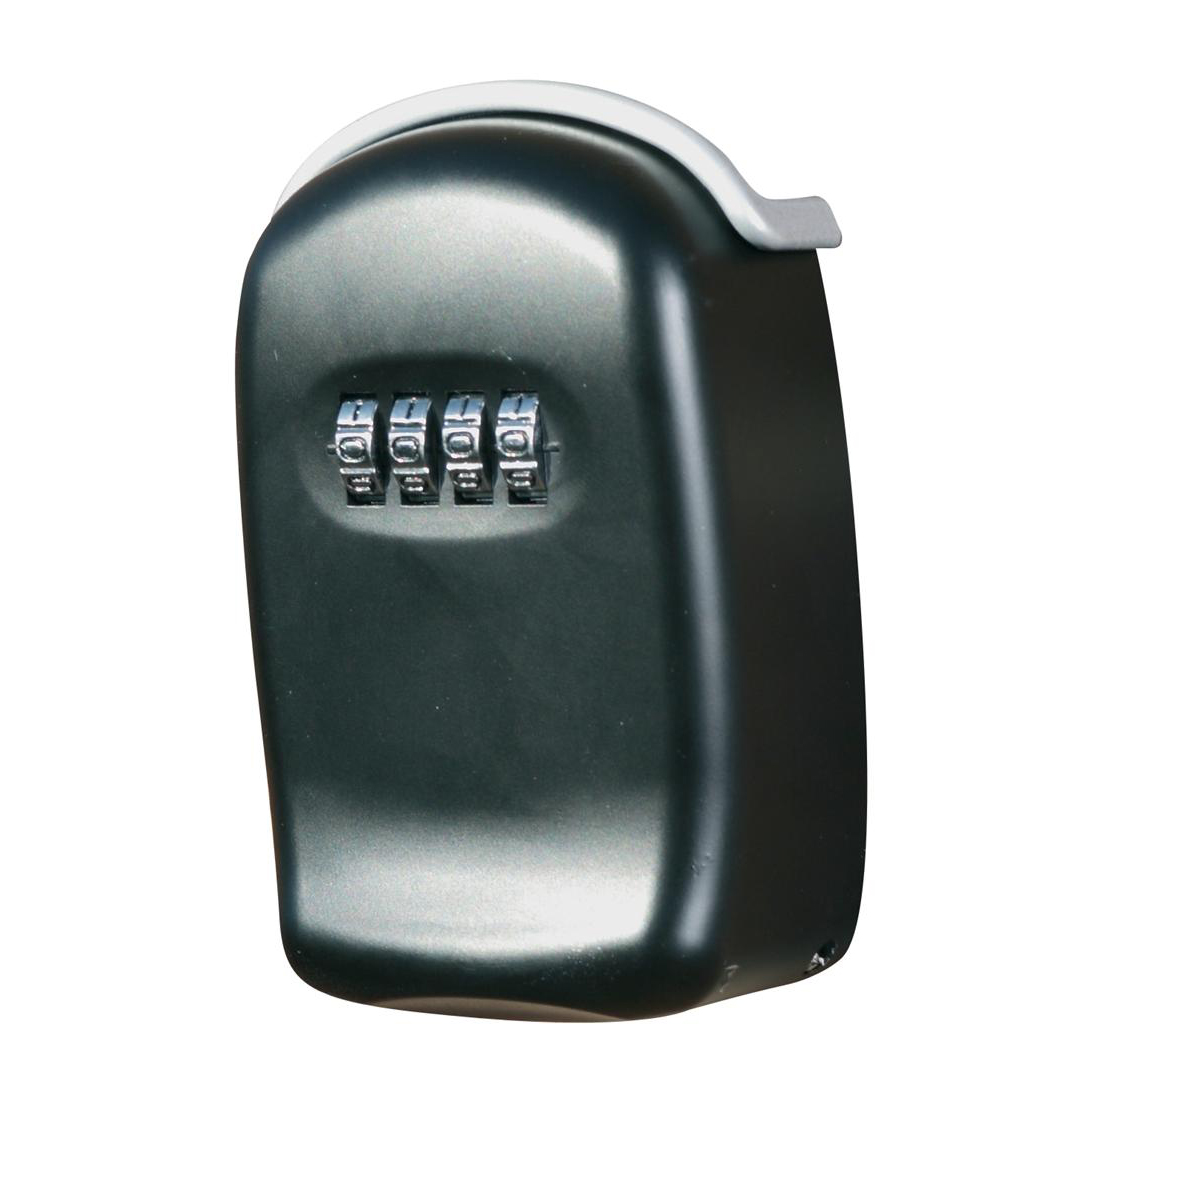 Key Store Phoenix Key Store Safe Box Combination Lock W65xD35xH100mm Ref KS0001C